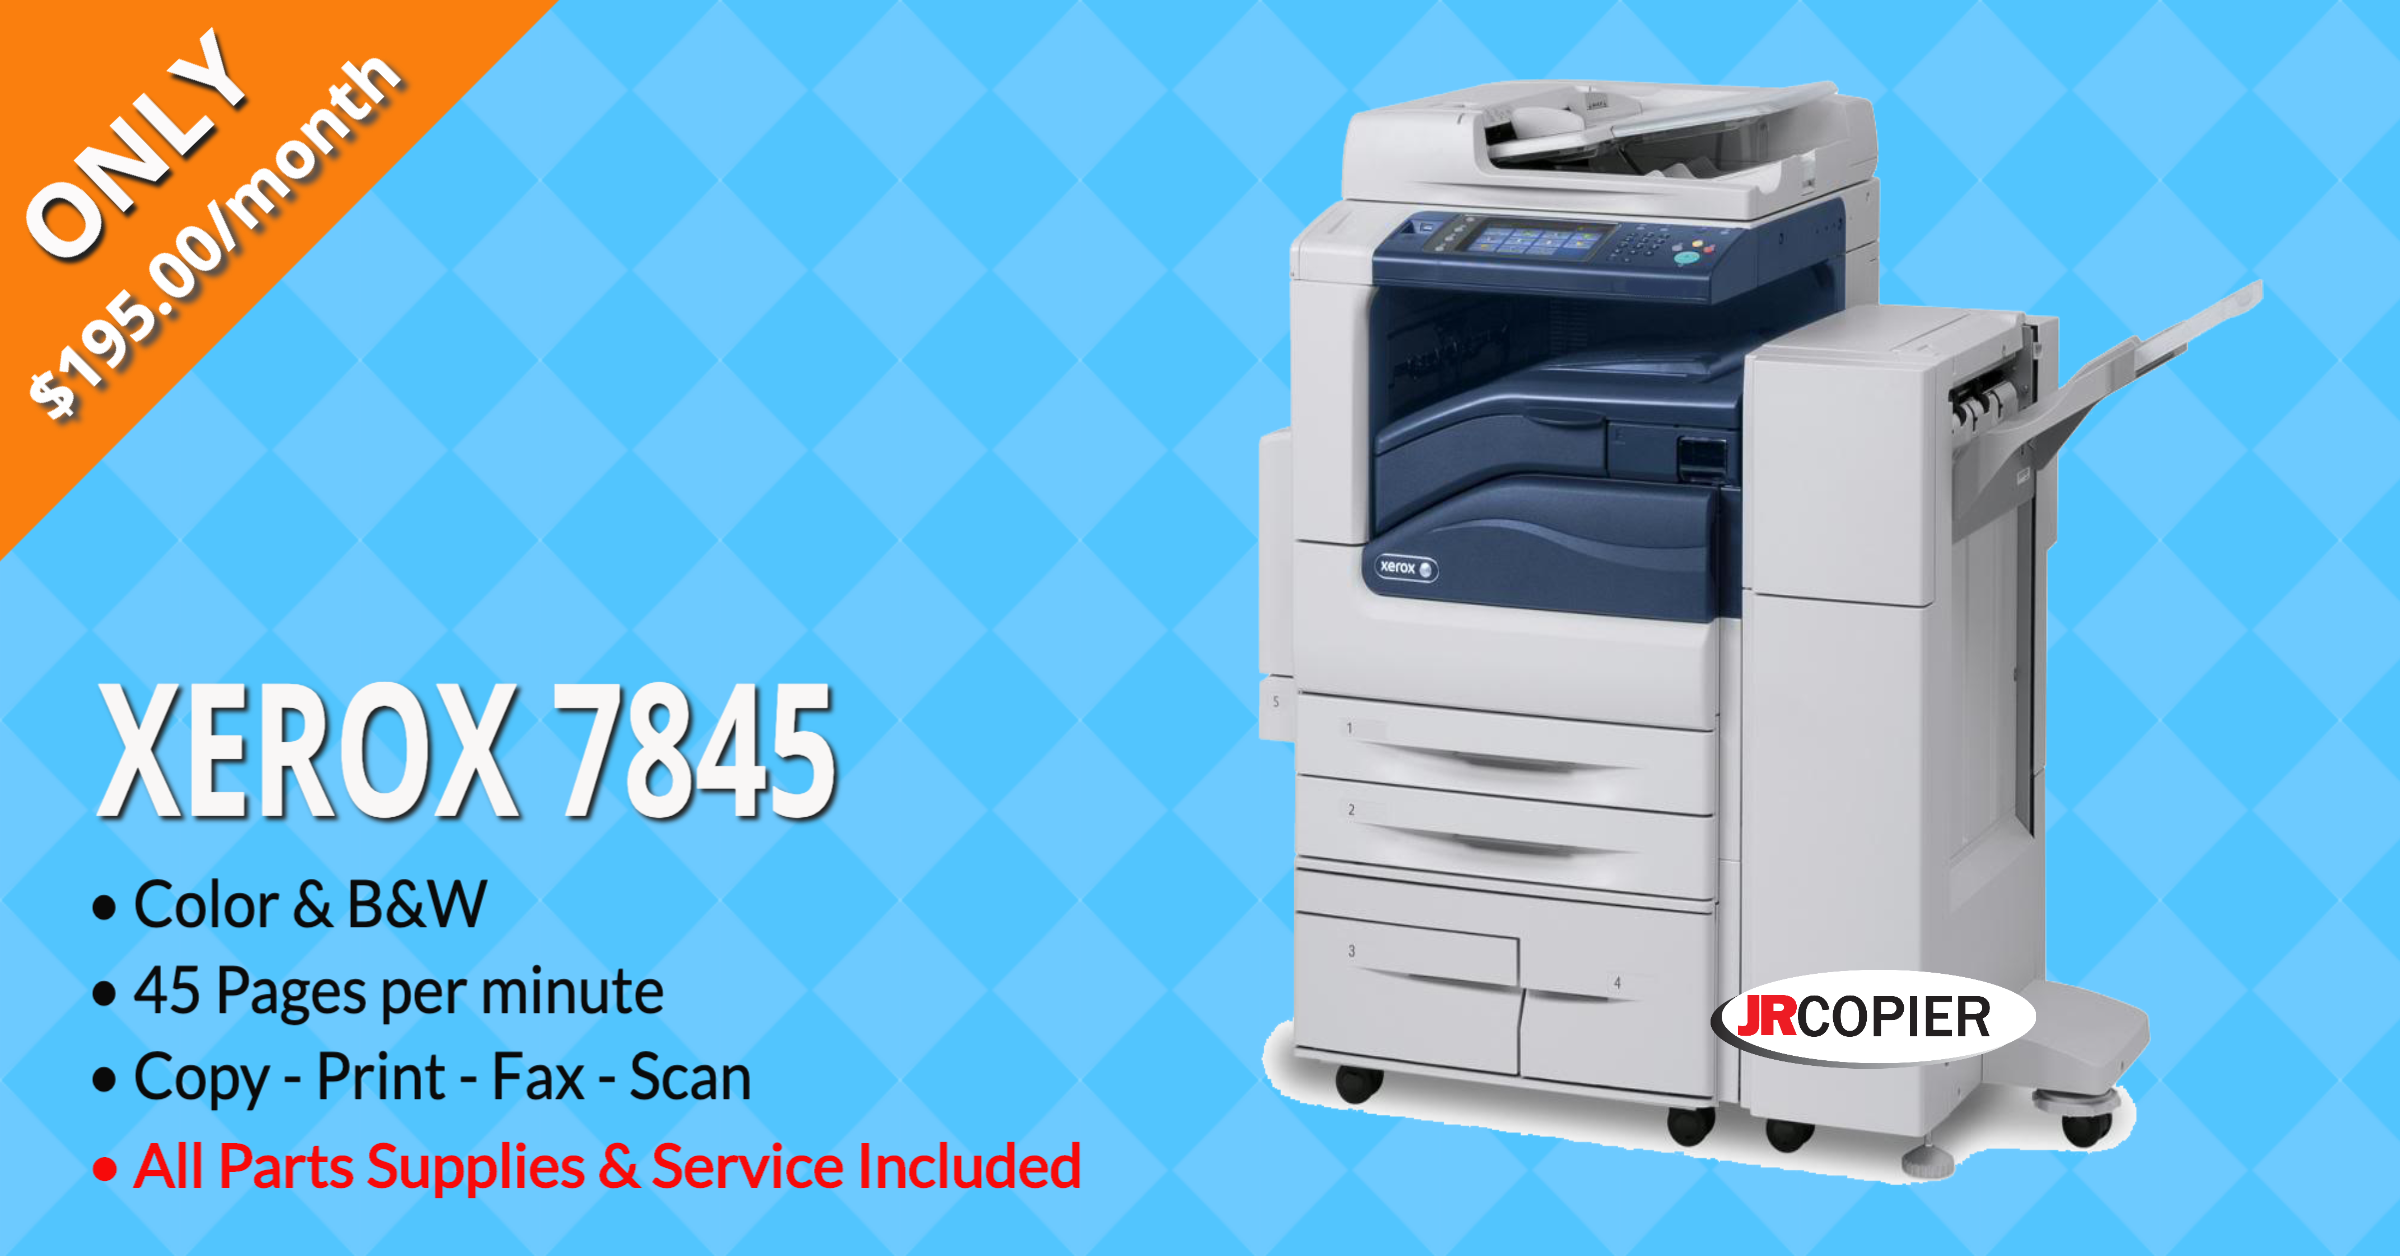 Copy Machine Lease 08501, 08514, 08526, 08691